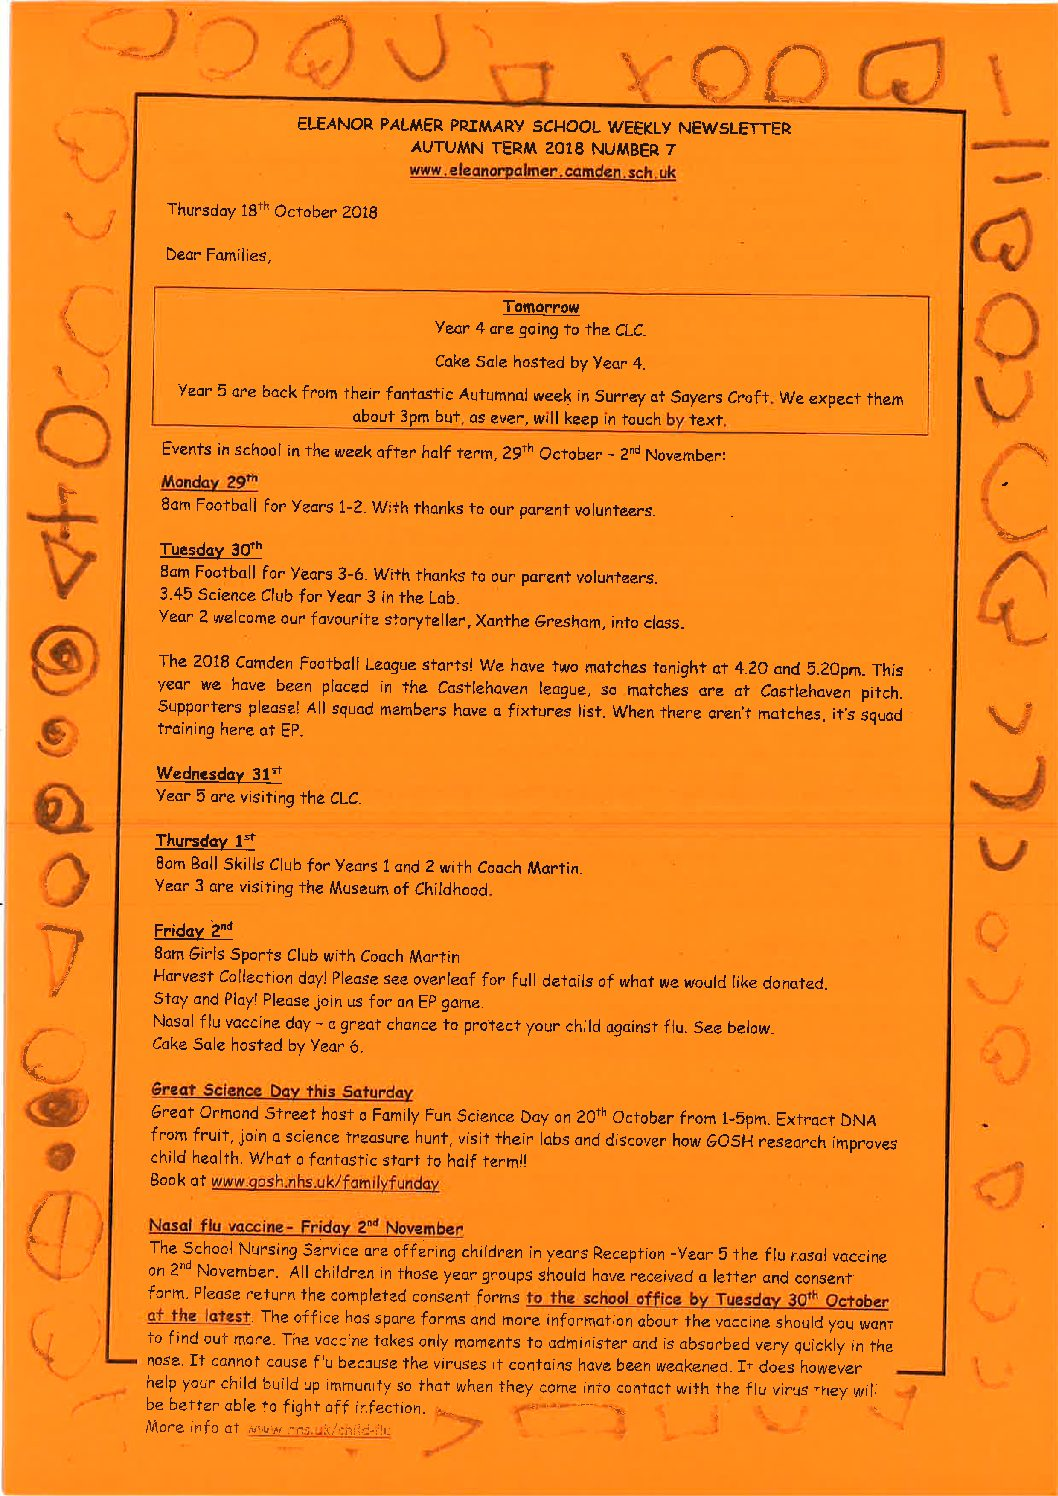 Newsletters - Eleanor Palmer Primary School